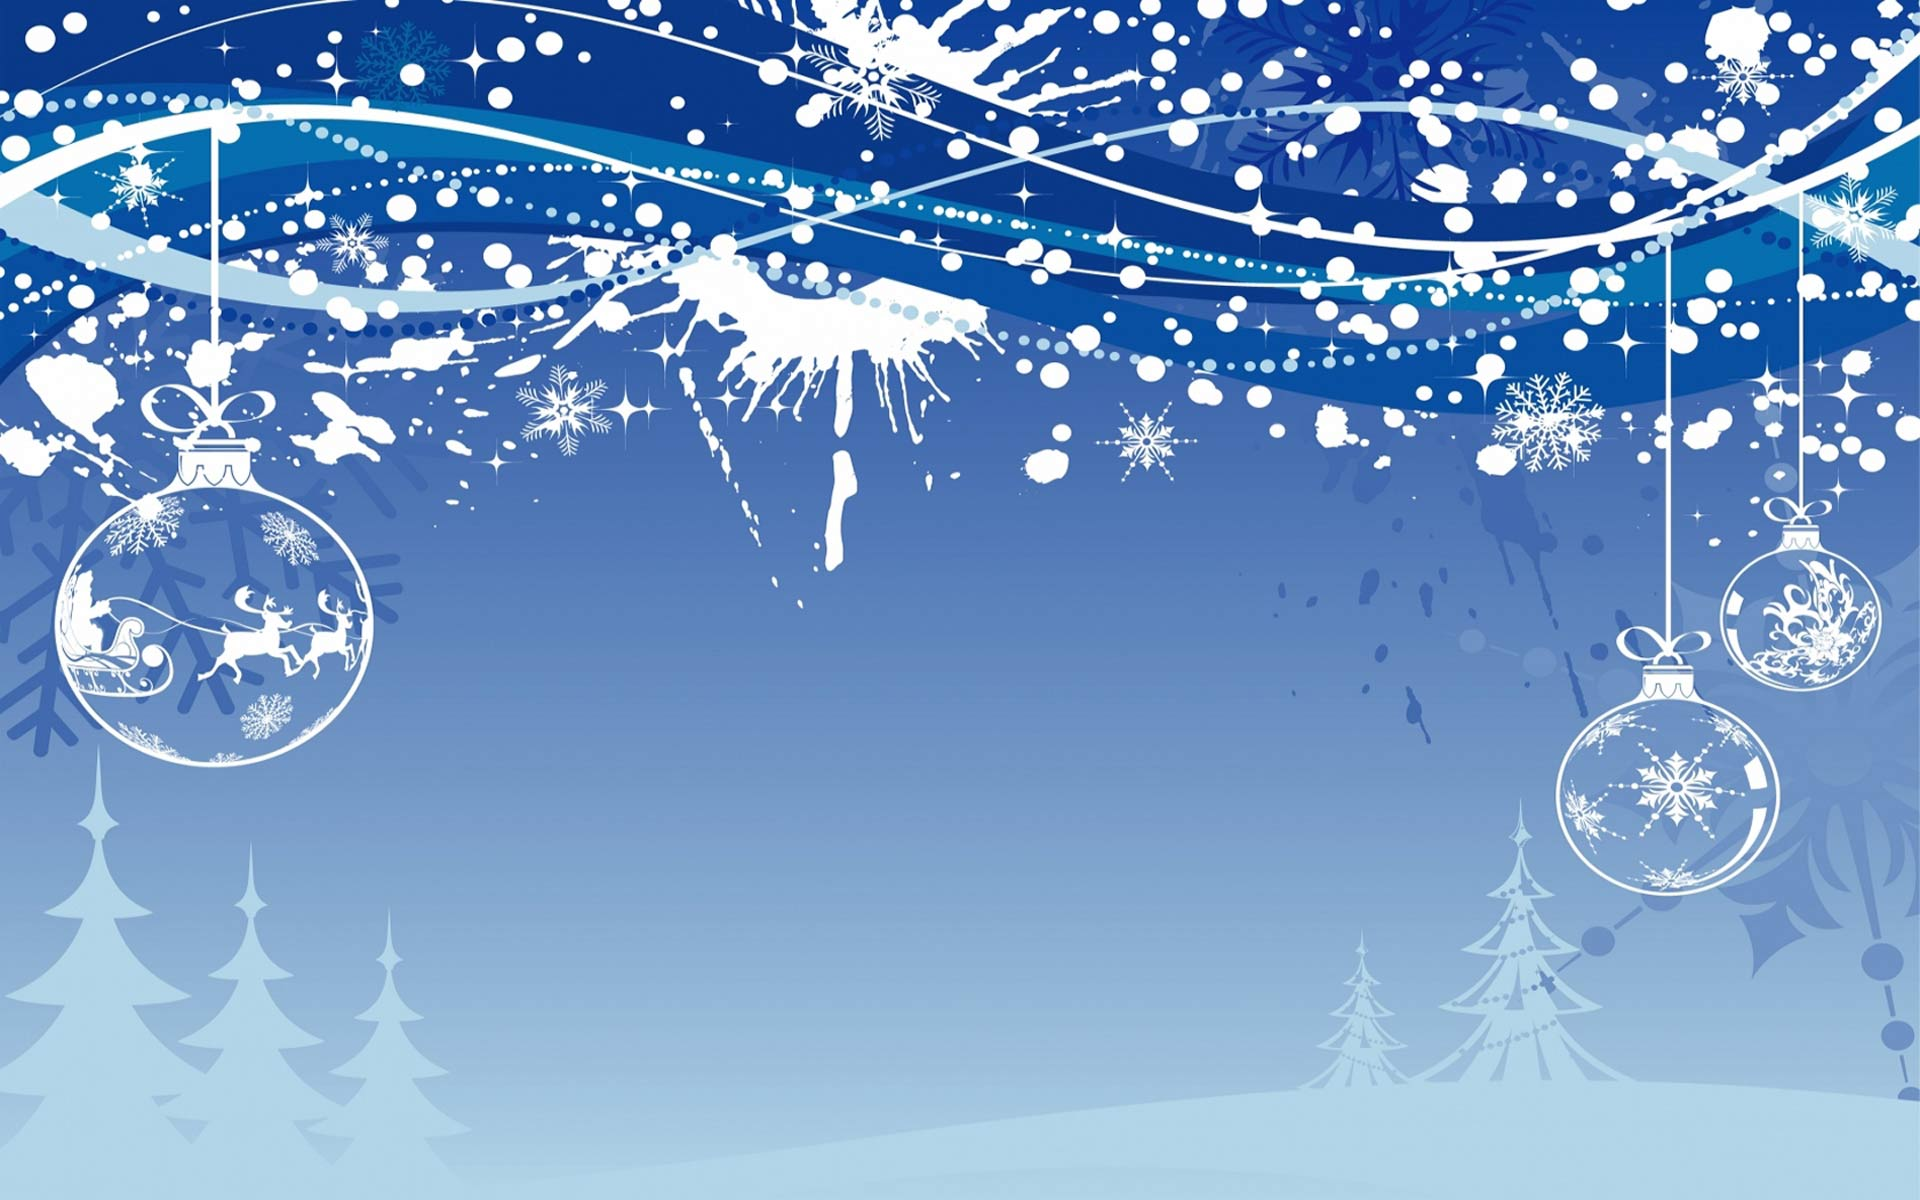 wallpaper android live christmas wallpaper android Desktop 1920x1200